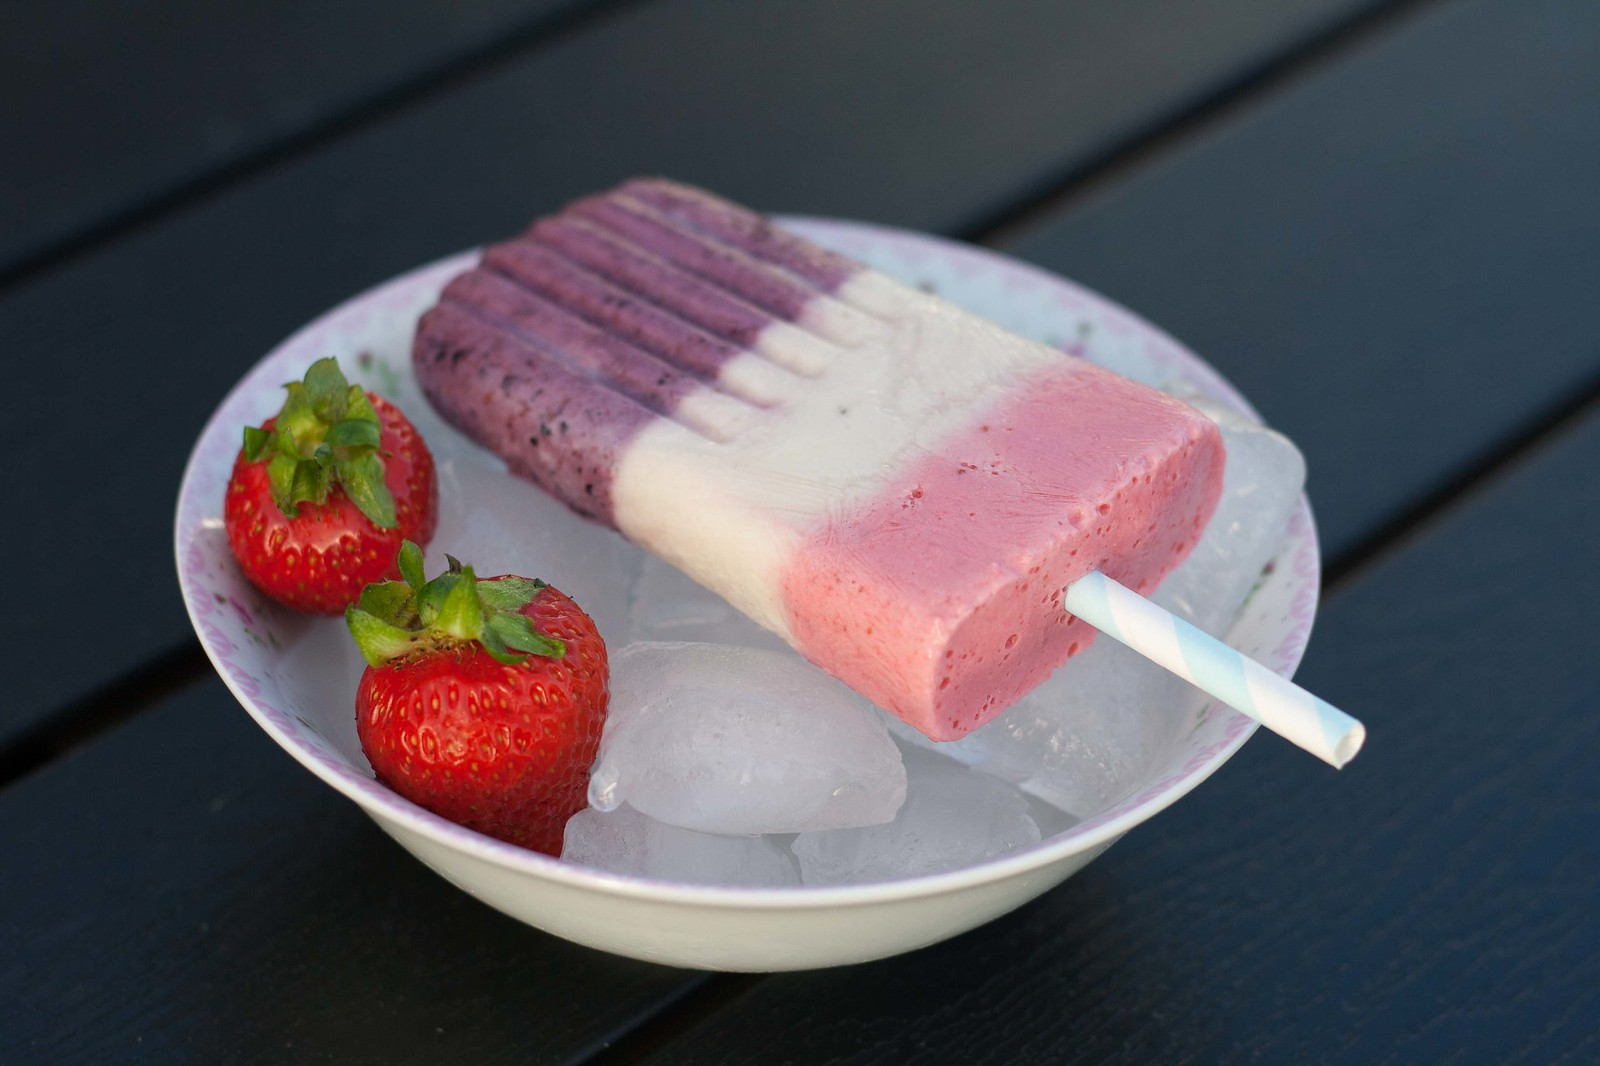 Recipe for Homemade Popsicle with Greek Yogurt and Berries